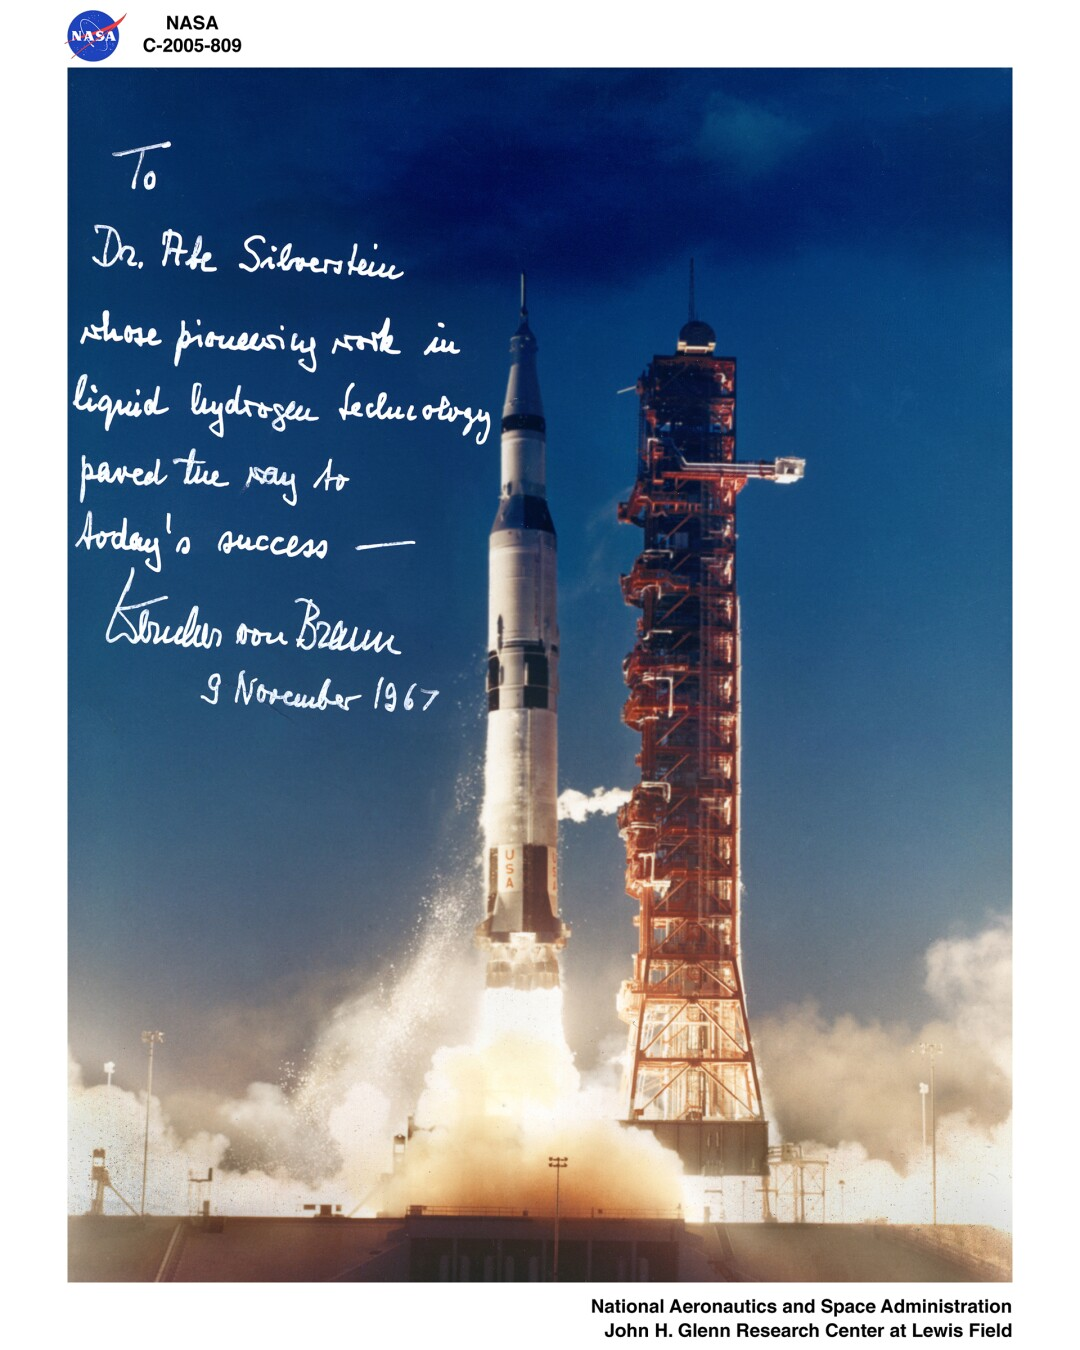 Signed photographic print of a Saturn 5 launch